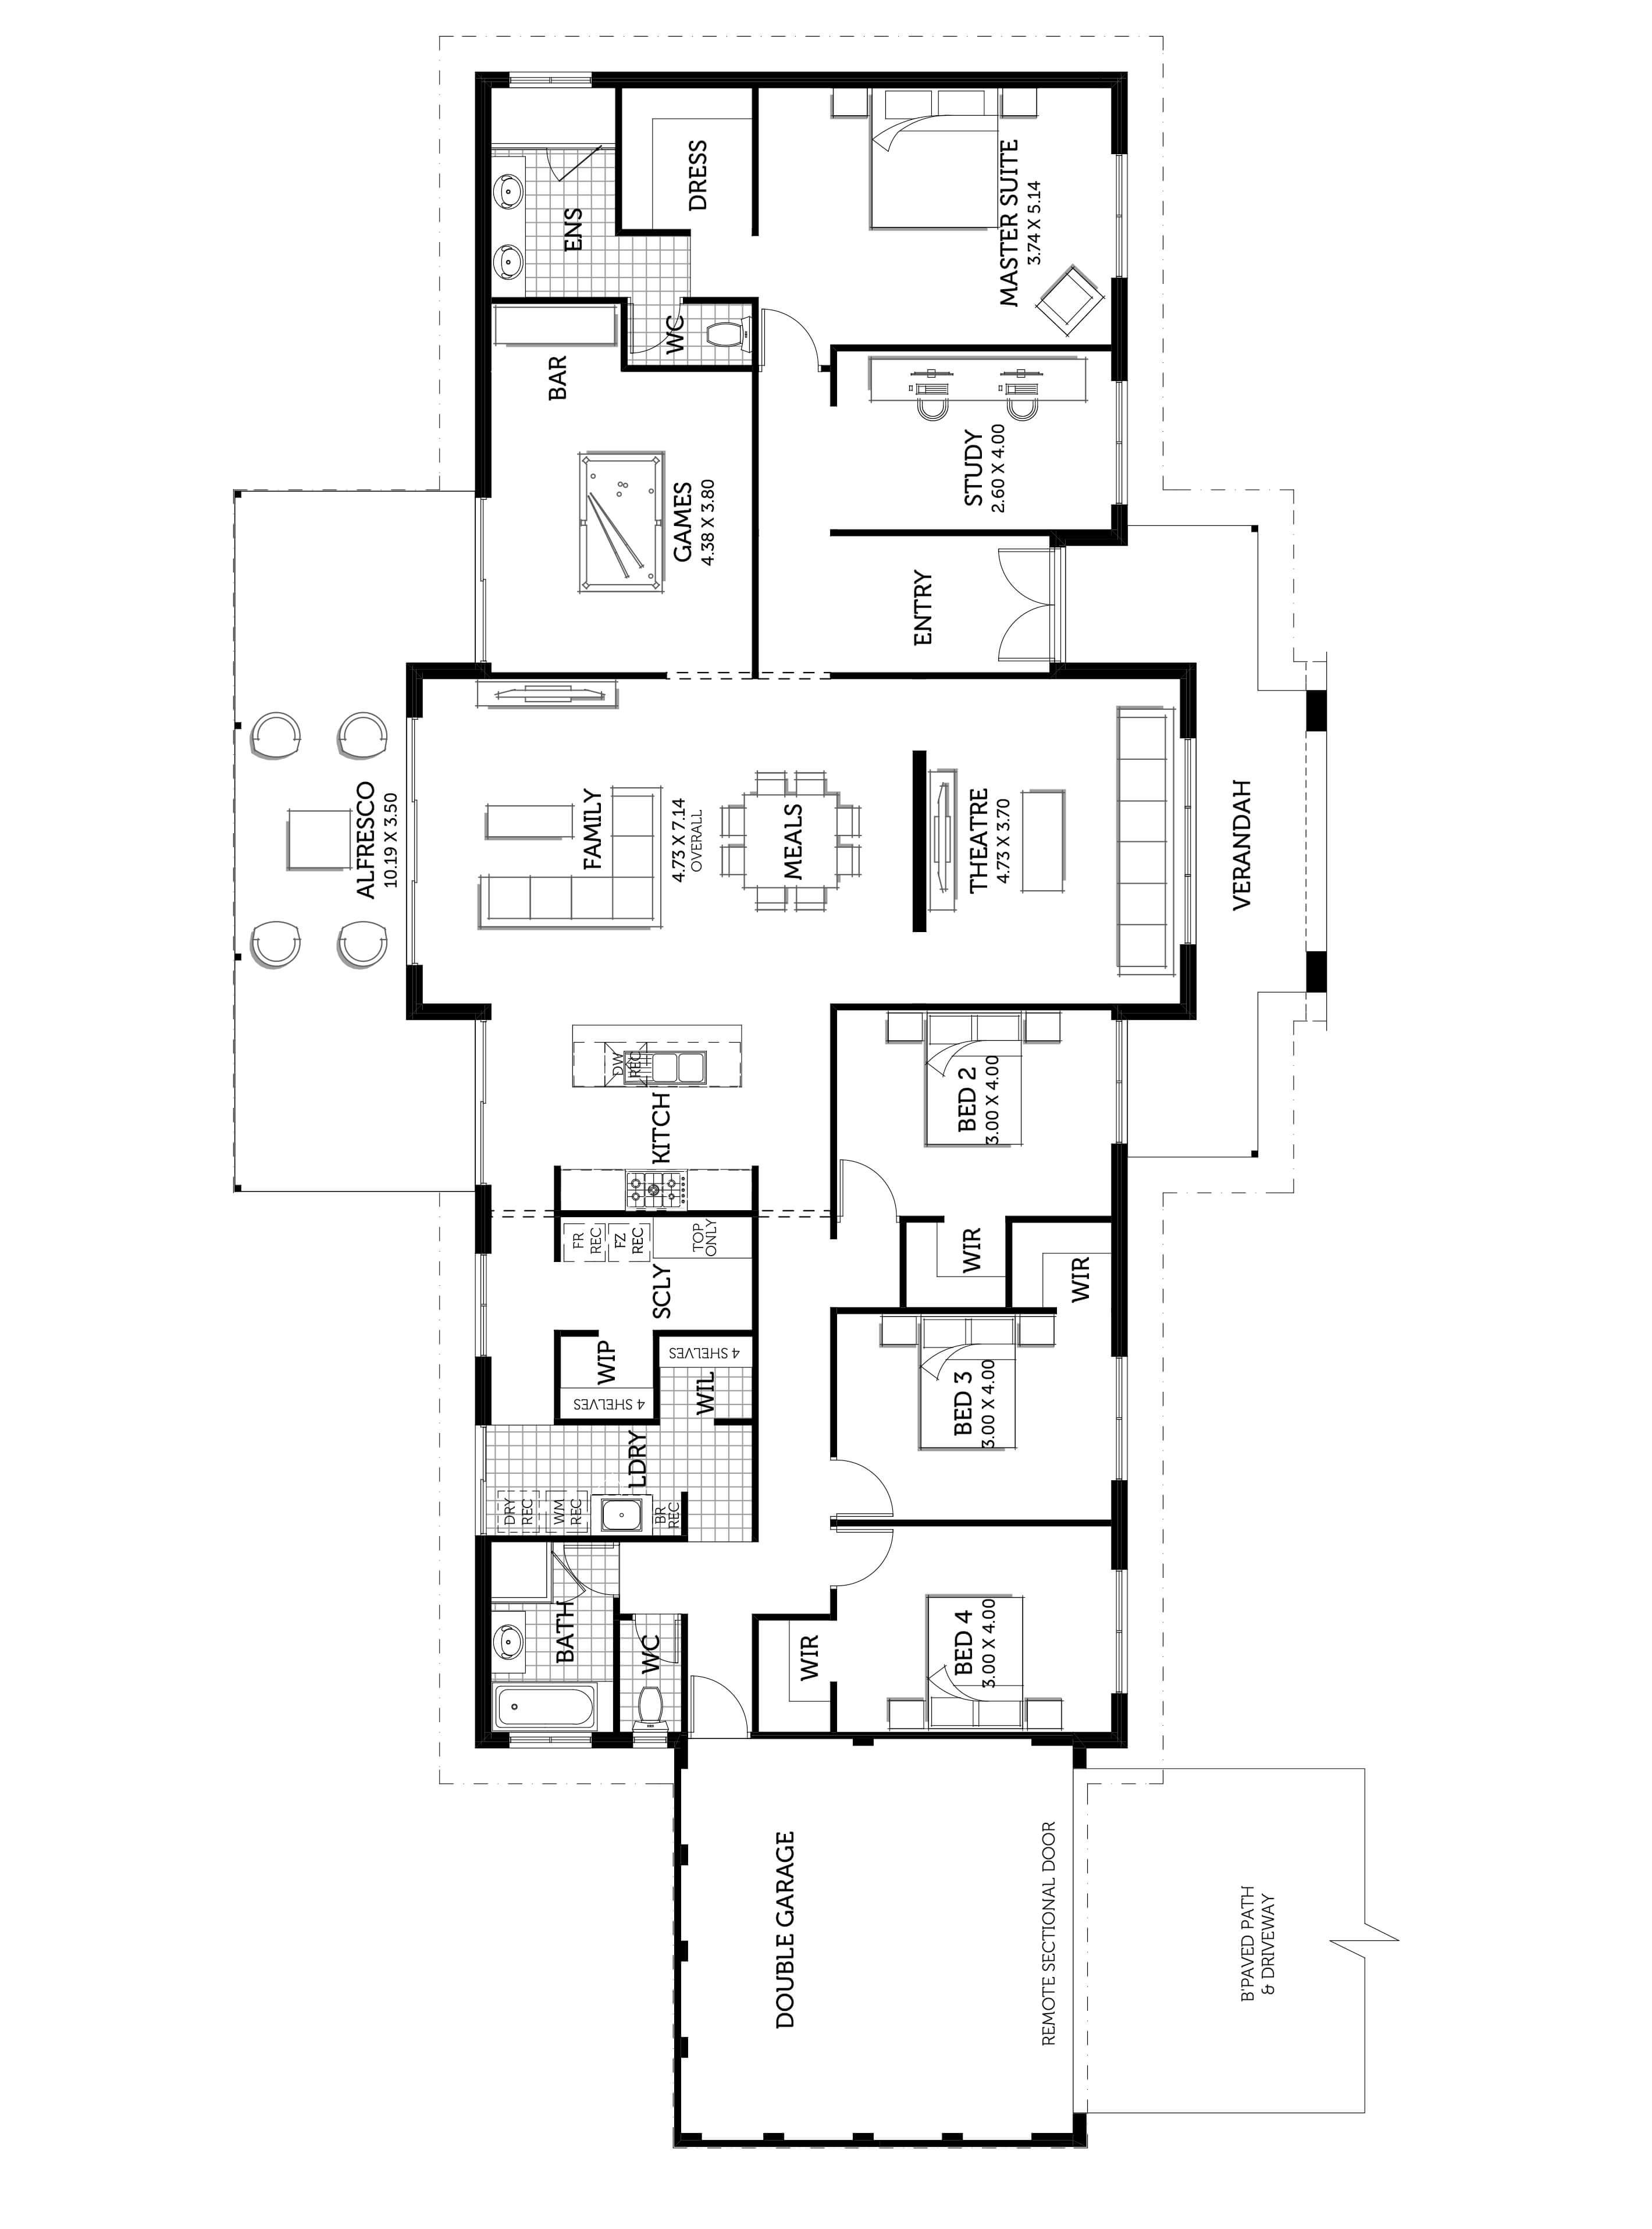 The Matilda Smart Homes For Living Split Level Floor Plans Floor Plans House Design